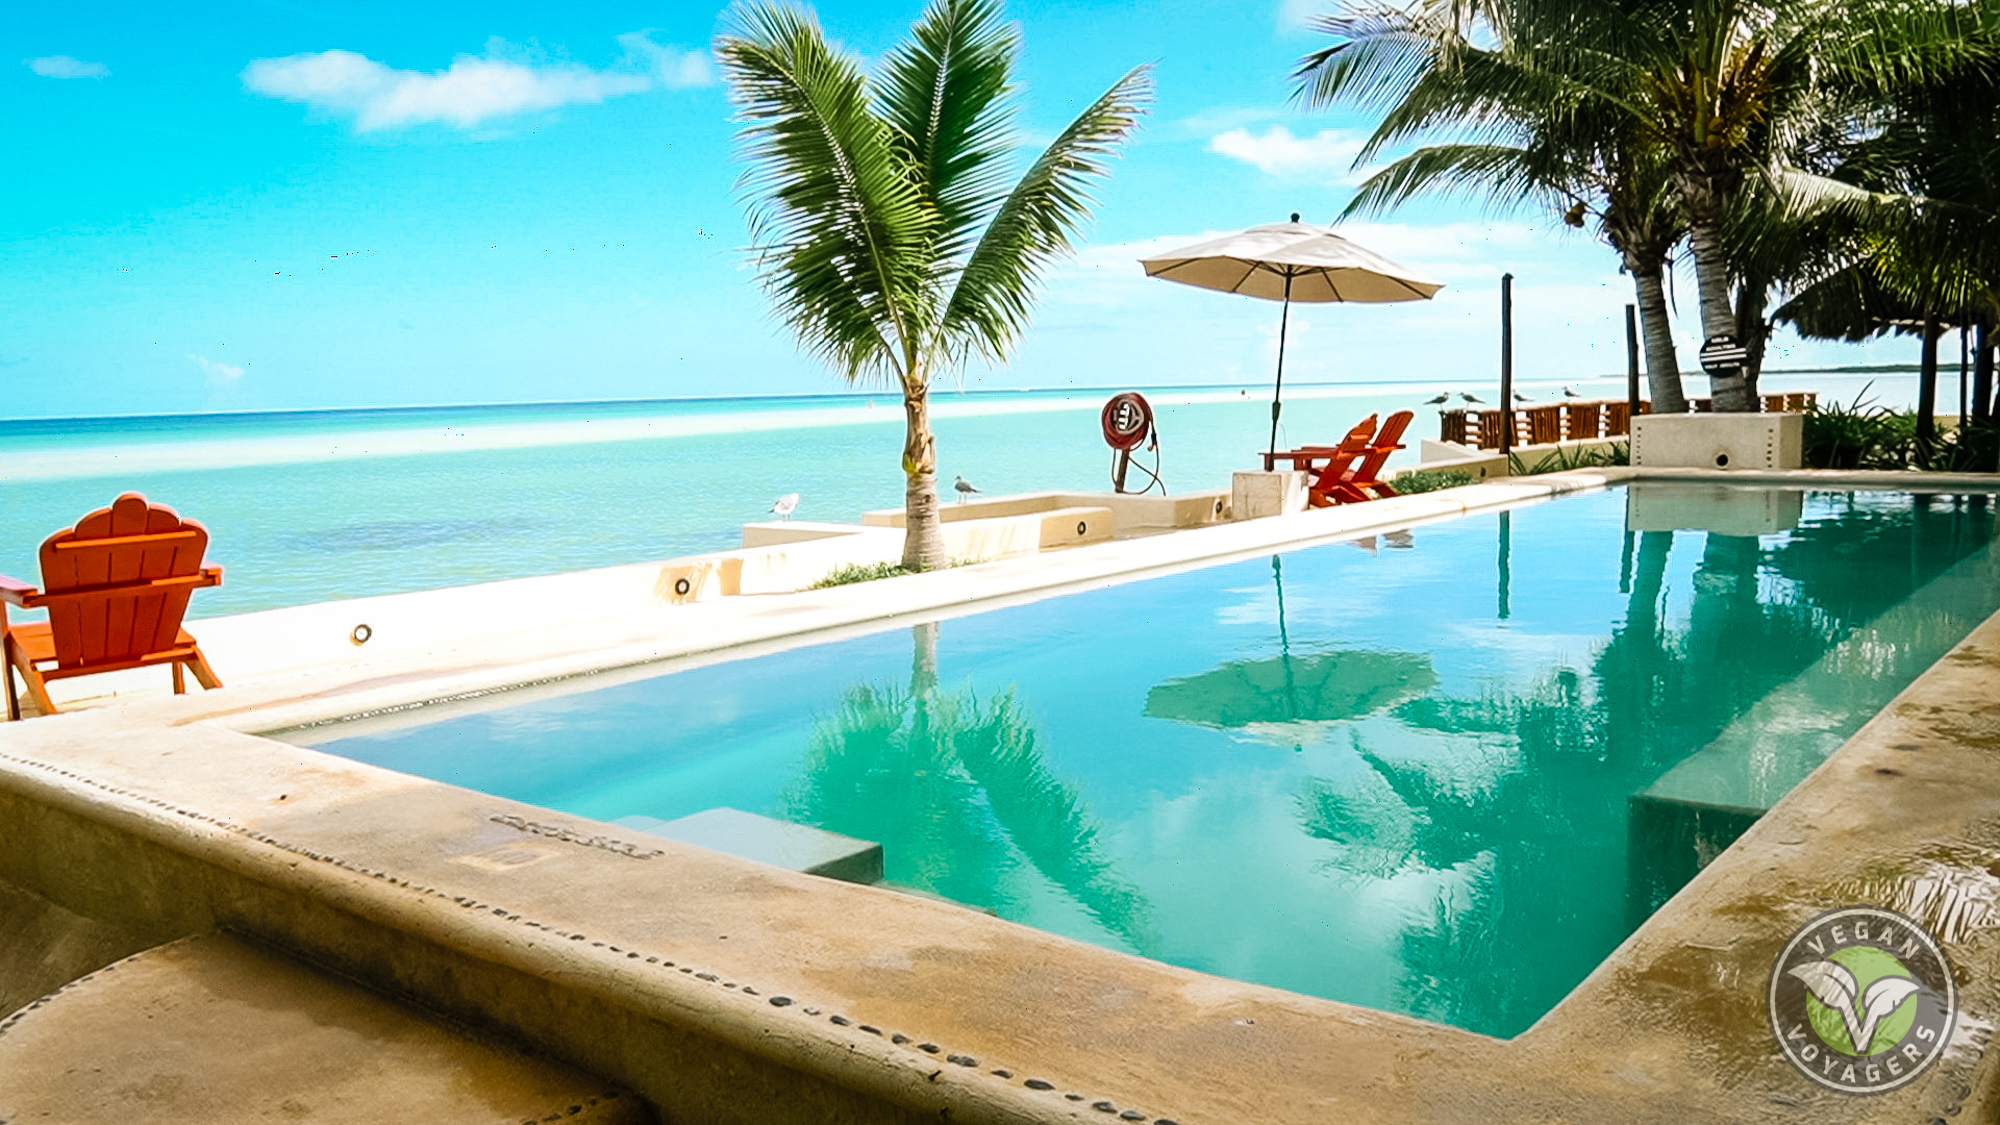 The pool at Hotel Las Nubes   Tips for Visiting Isla Holbox, Mexico